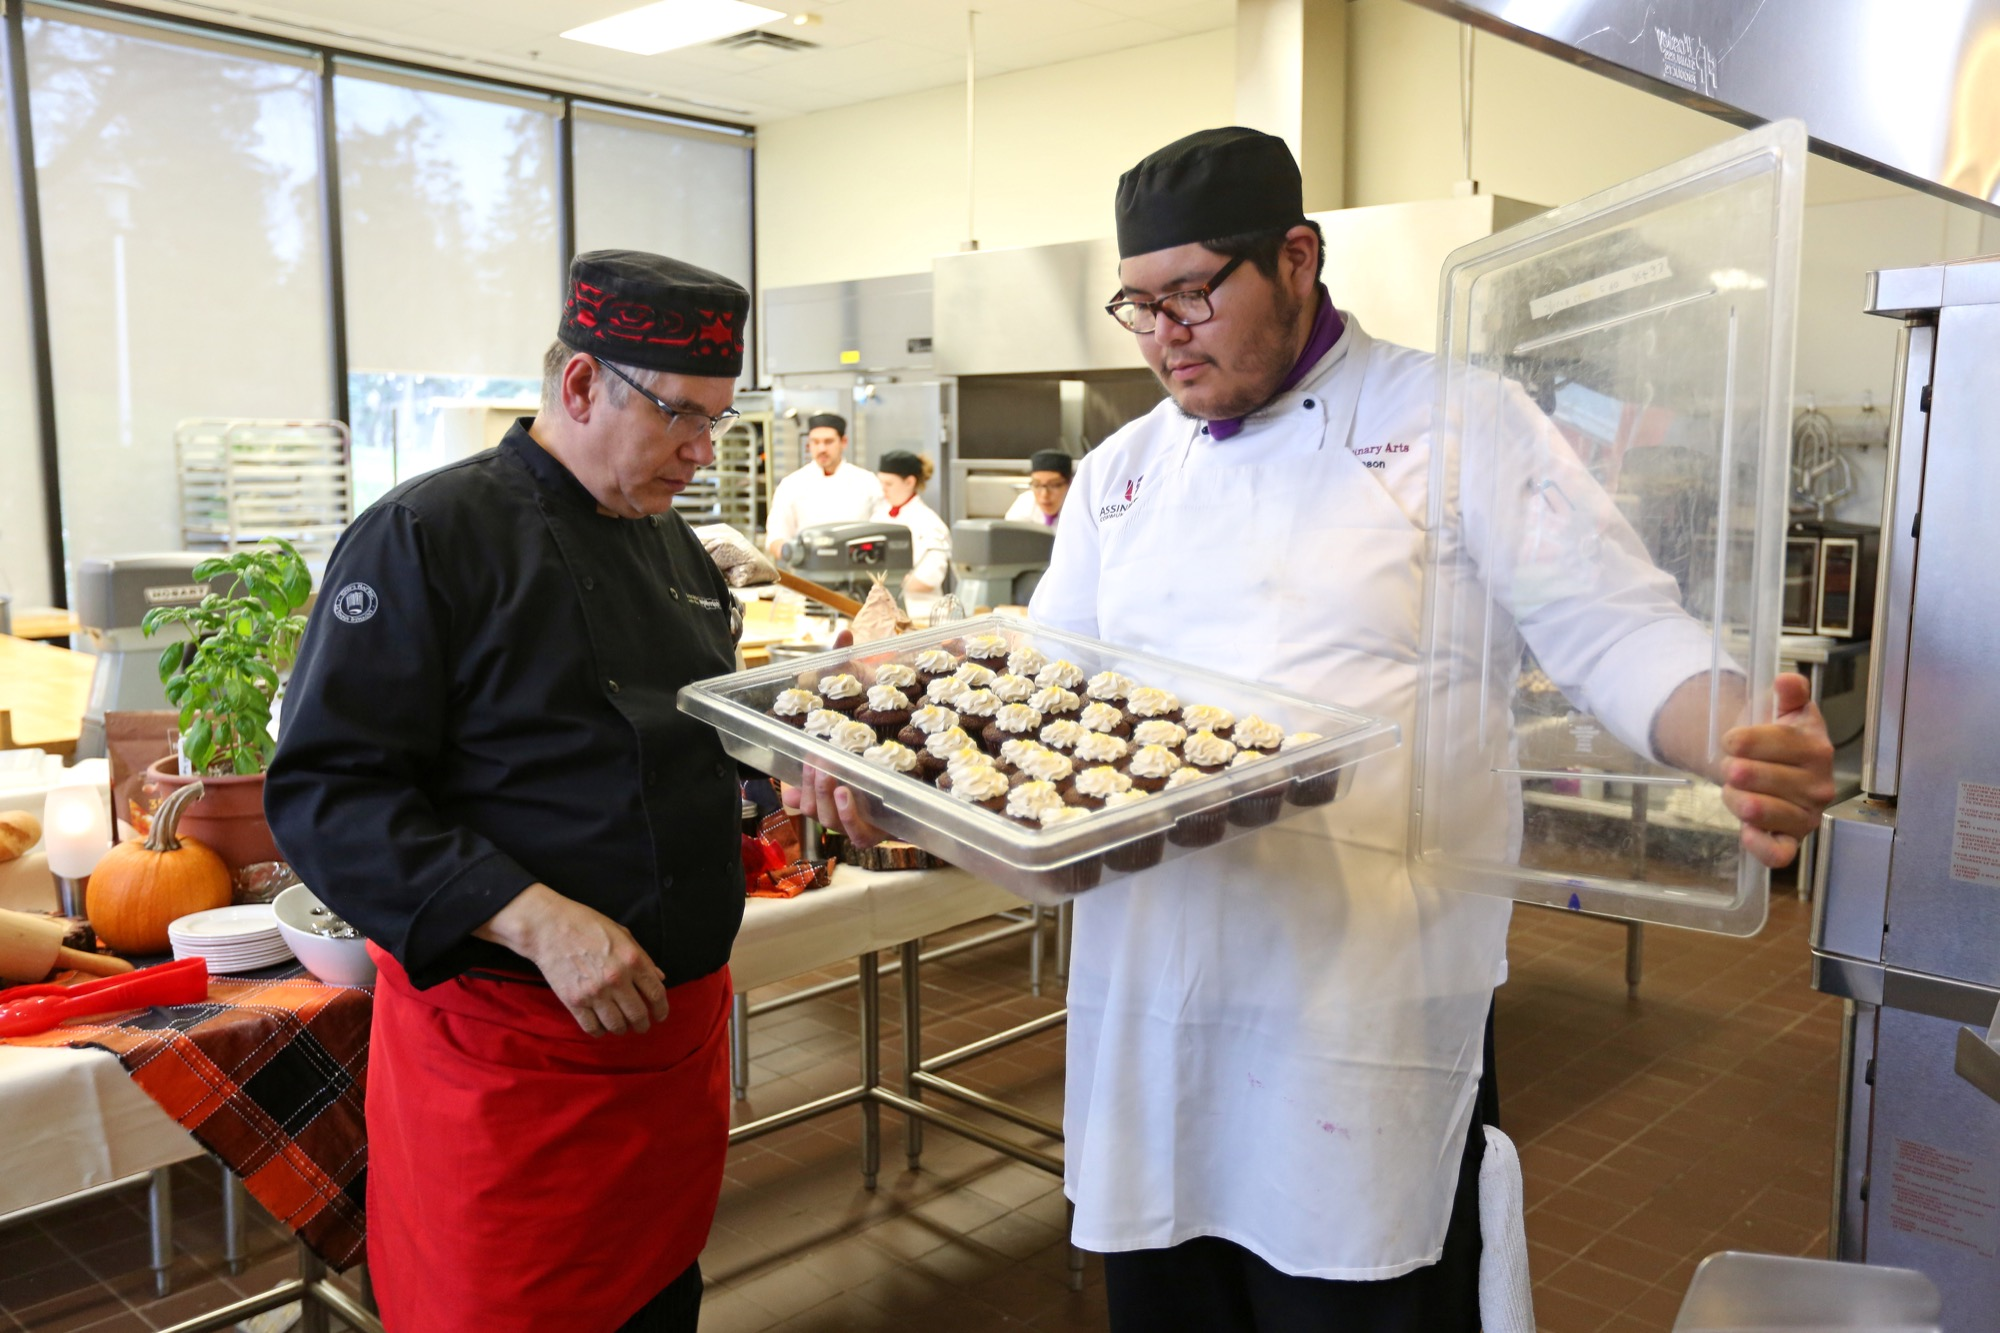 Chef David Wolfman looks over gourmet cupcakes held by Jason Huntinghawk, a second-year Manitoba Institute of Culinary Arts student at Assiniboine Community College, while teaching the MICA students Indigenous cooking skills.